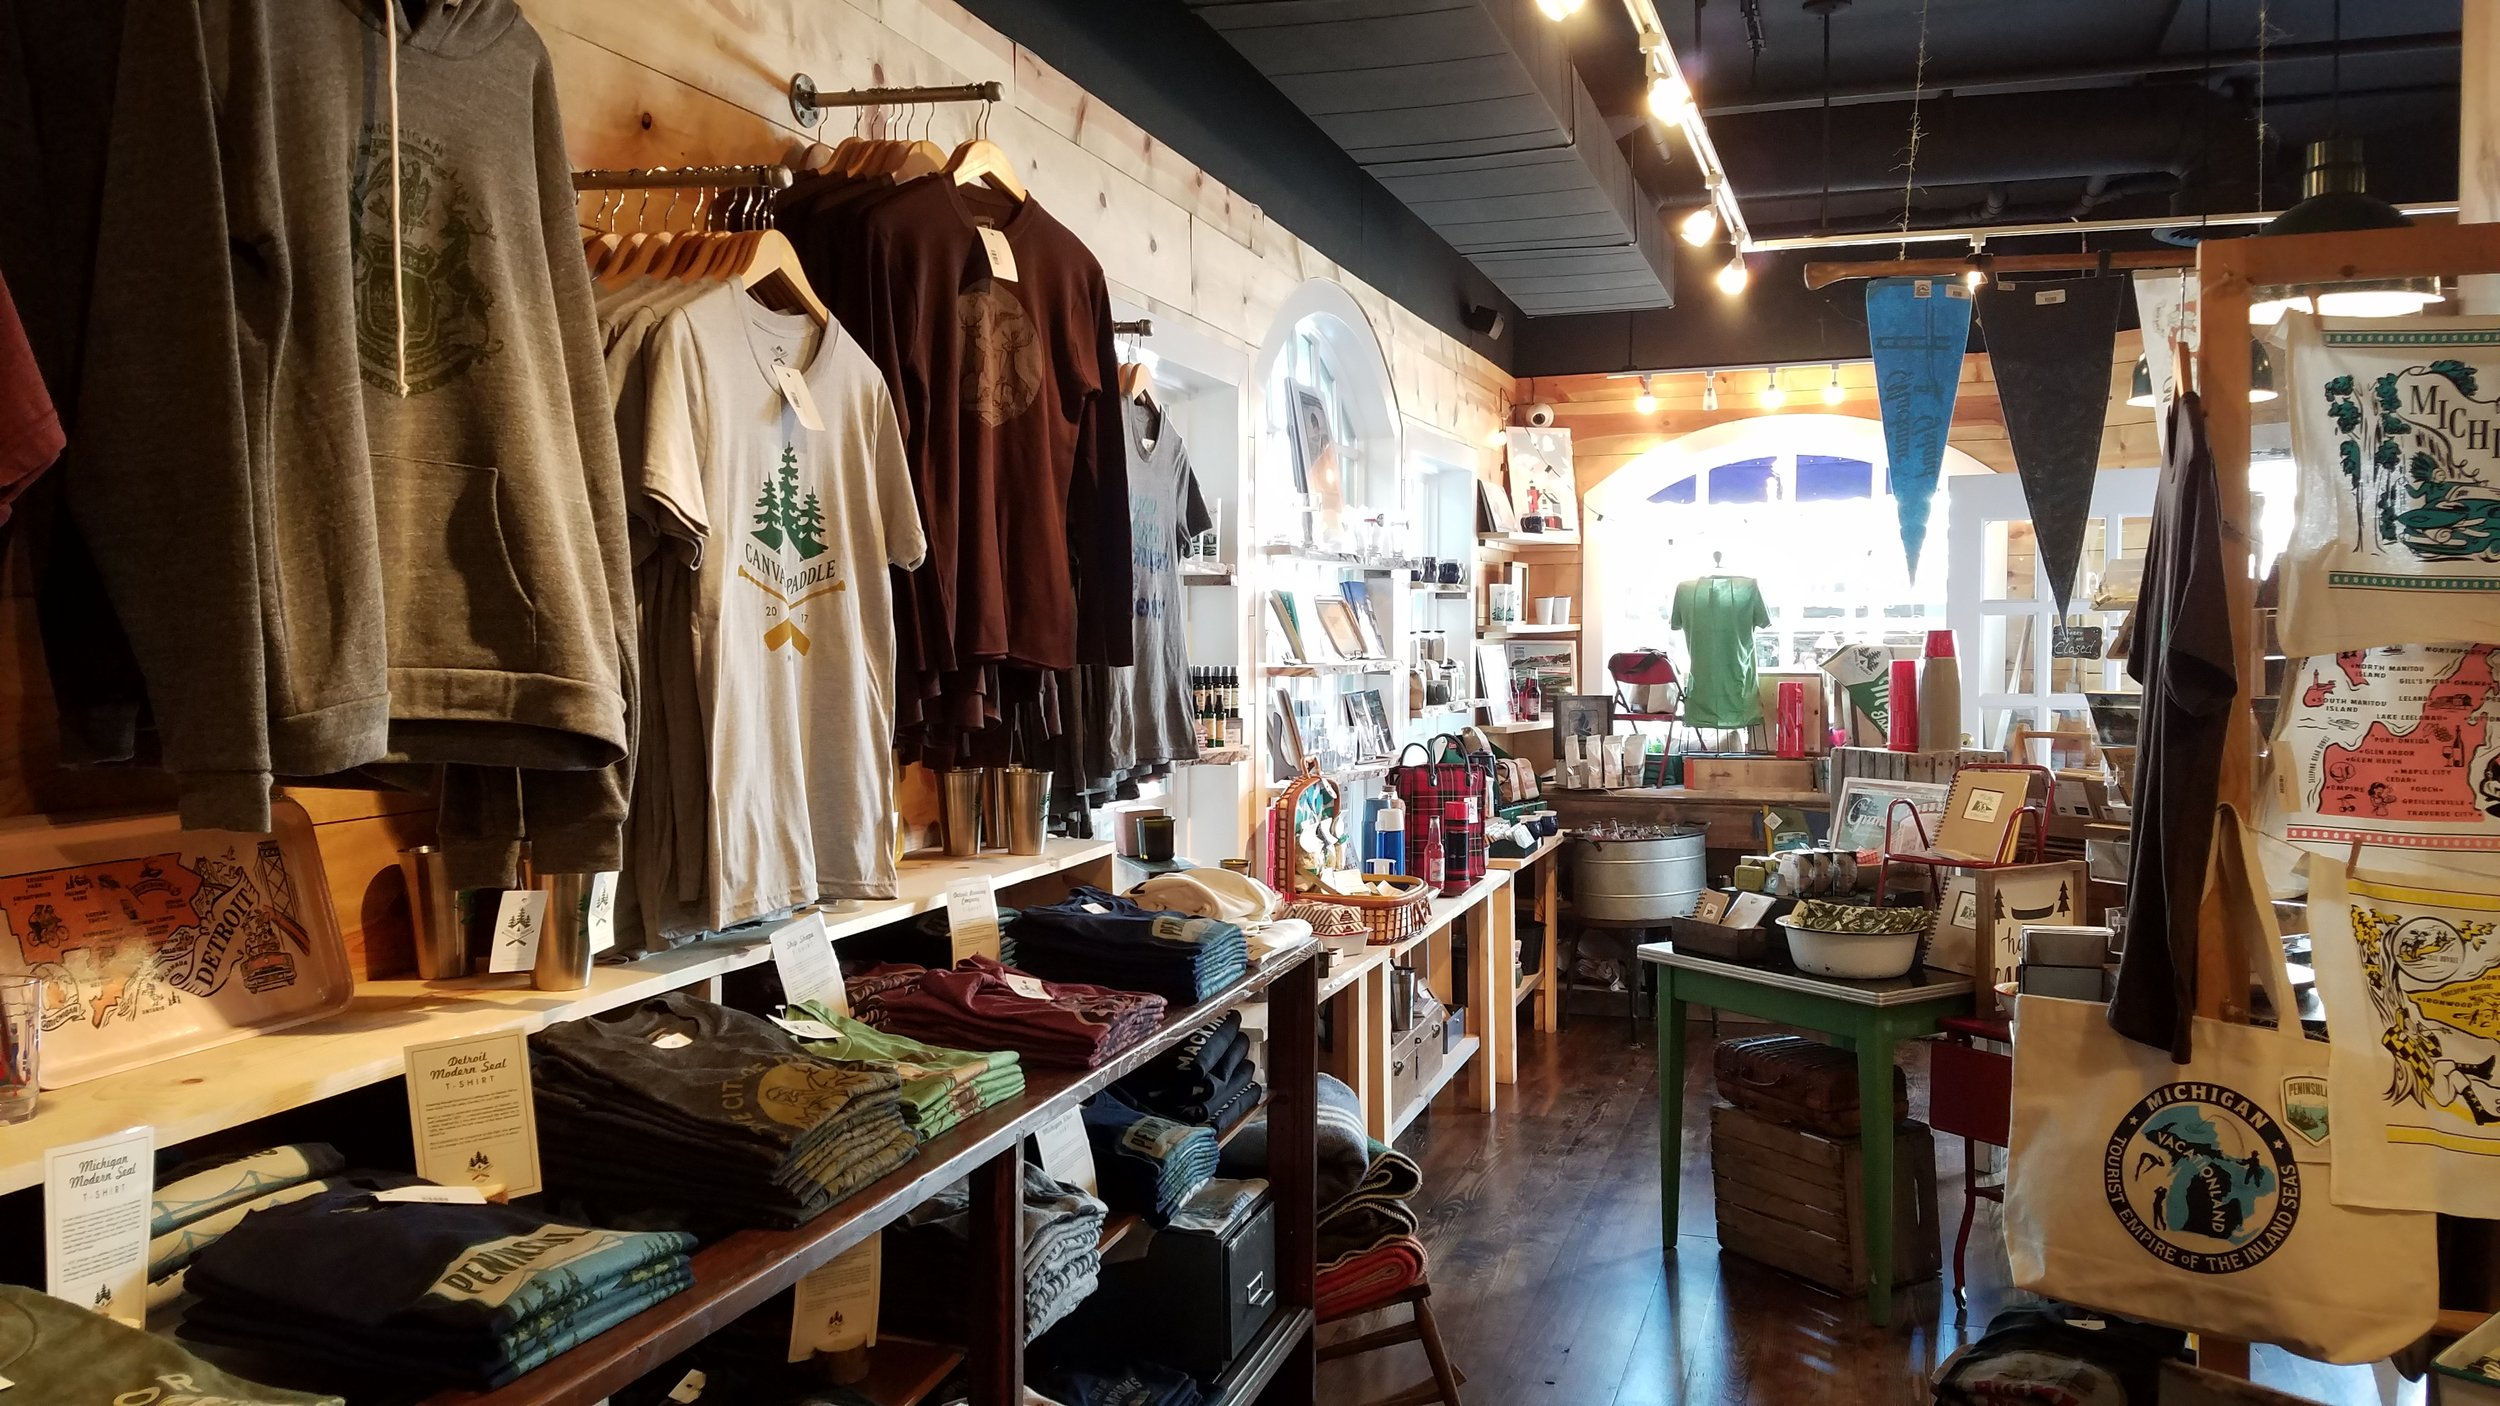 Canvas & Paddle , a Main Street store that opened in May 2017,specializes in selling apparel, household items and décor, and assorted bric-a-brac. MyNorth.com had  this  to say about it and the new Doud's Market & Deli in an article published in April.